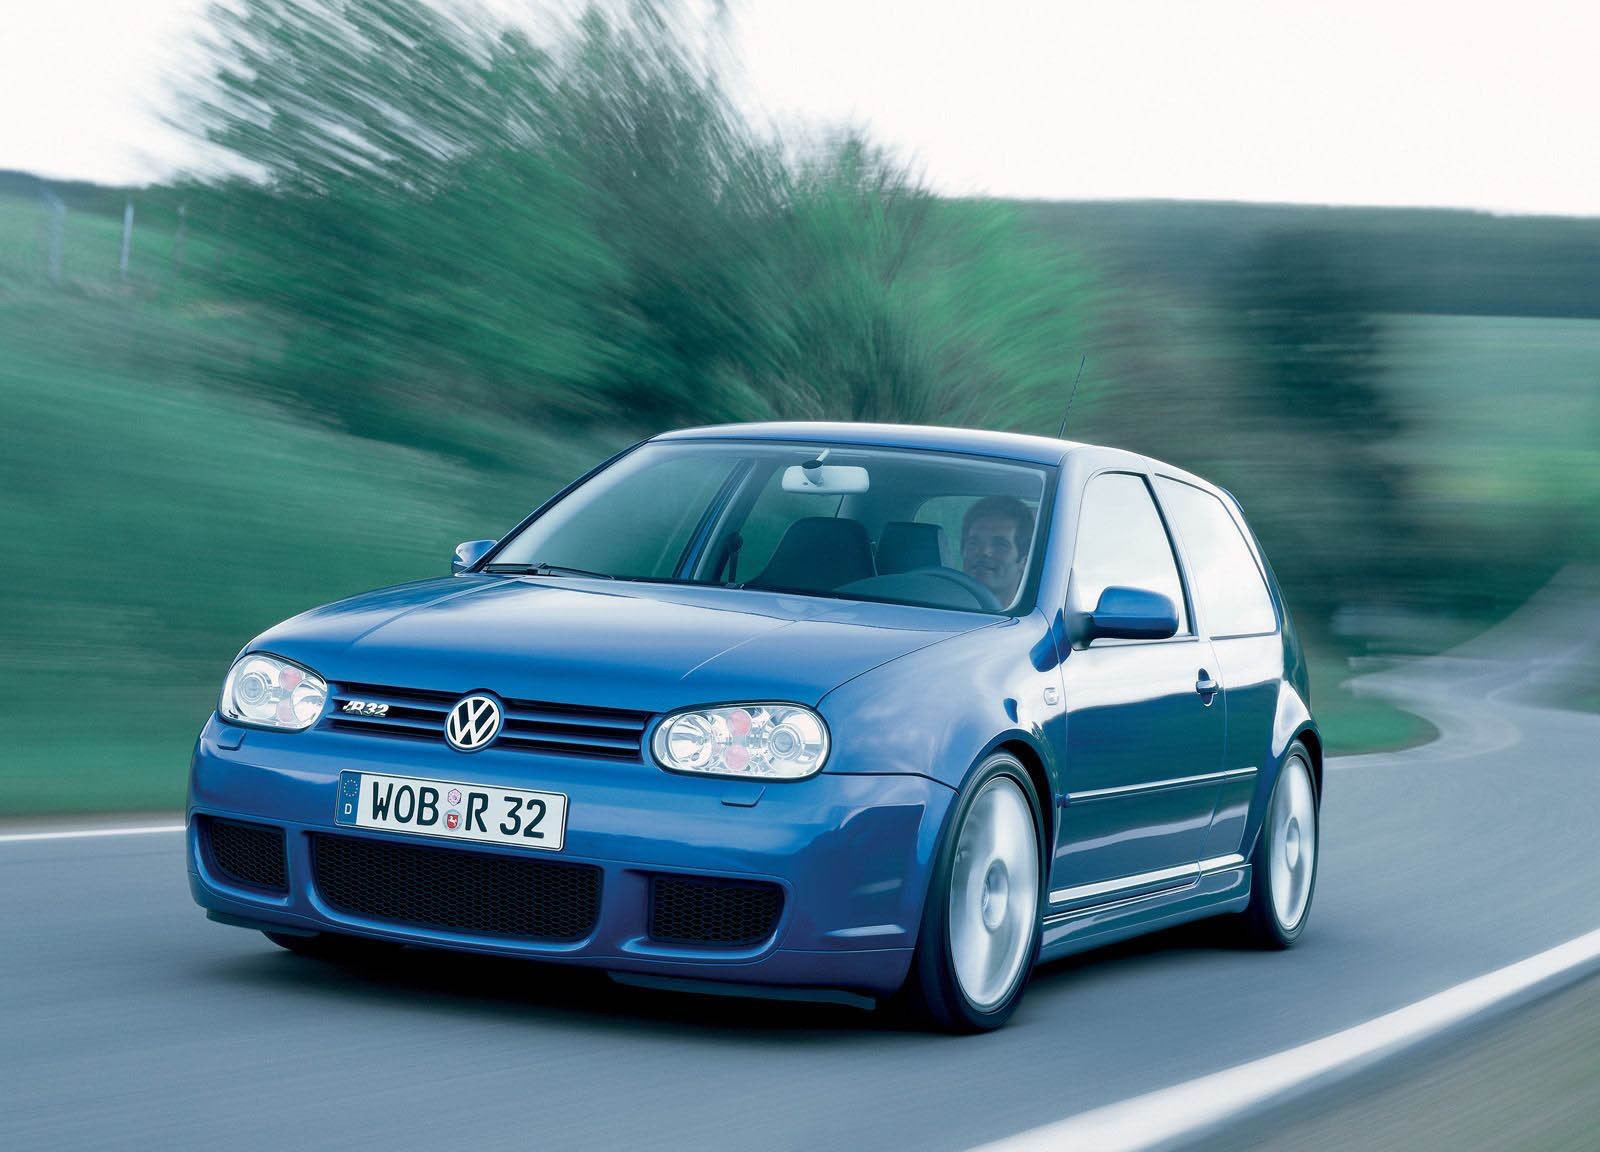 2003 volkswagen golf r32 review top speed. Black Bedroom Furniture Sets. Home Design Ideas